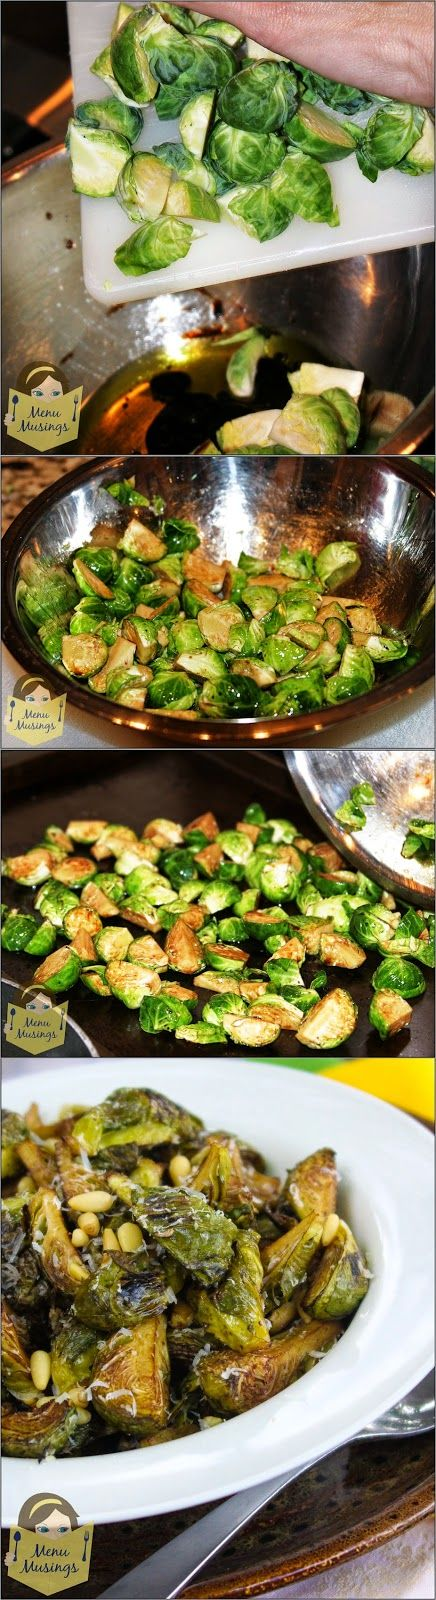 Balsamic Roasted Brussels Sprouts with Pine Nuts and Parmigiano ...